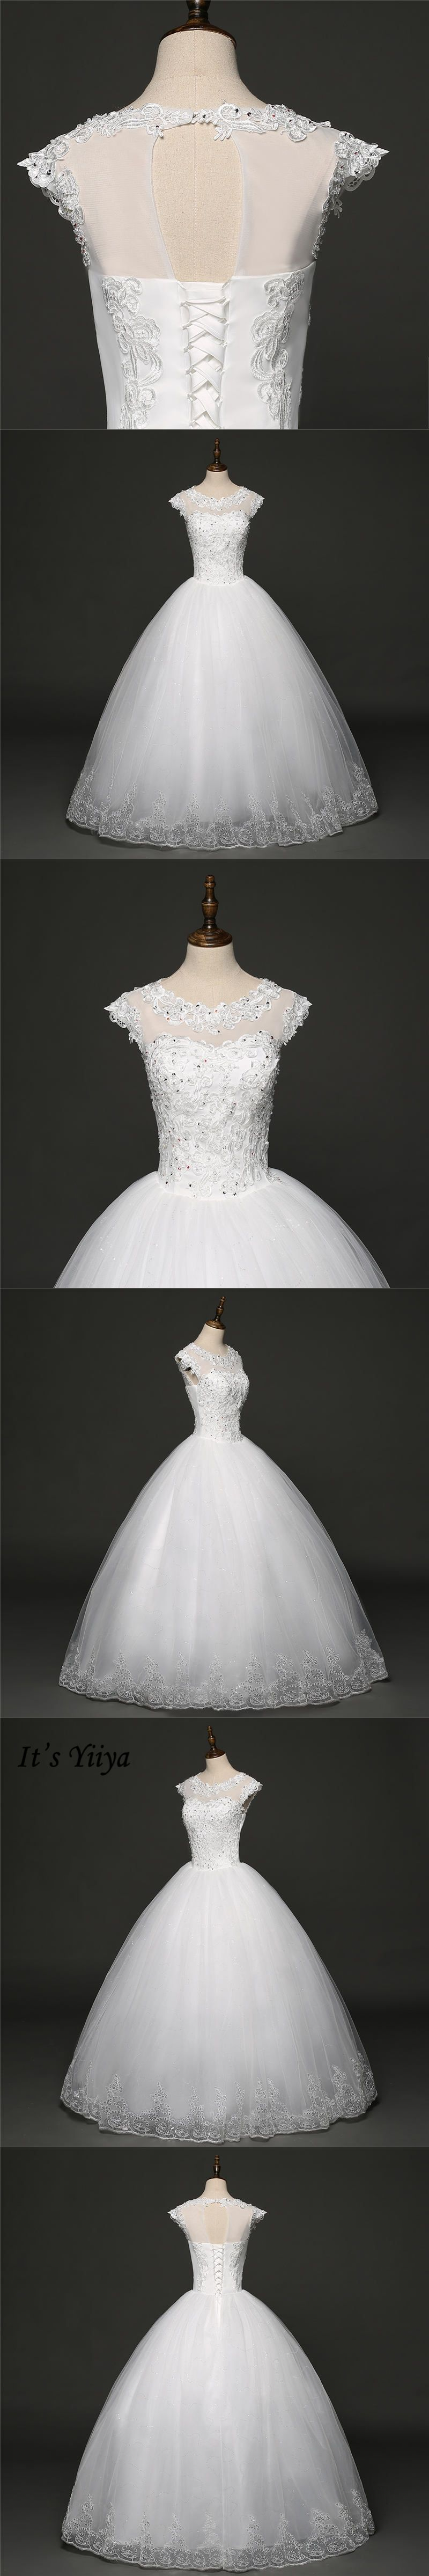 Itus yiiya off white short sleeve oneck sales wedding gowns bling